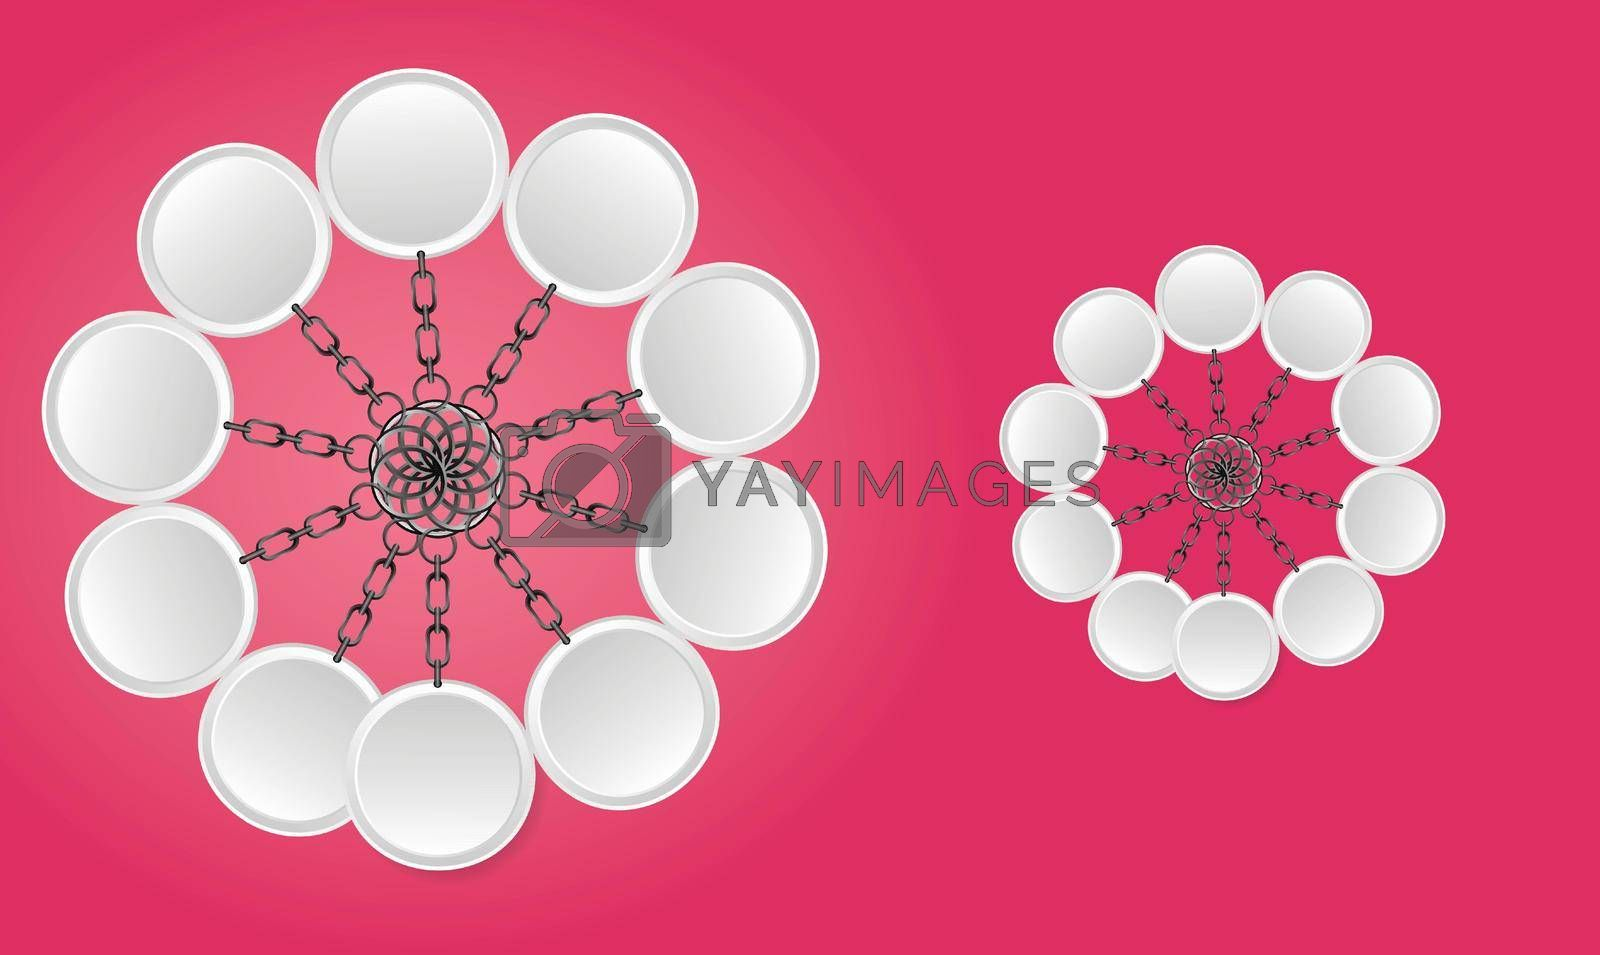 Royalty free image of 3d illustration of keyring on abstract red background by aanavcreationsplus